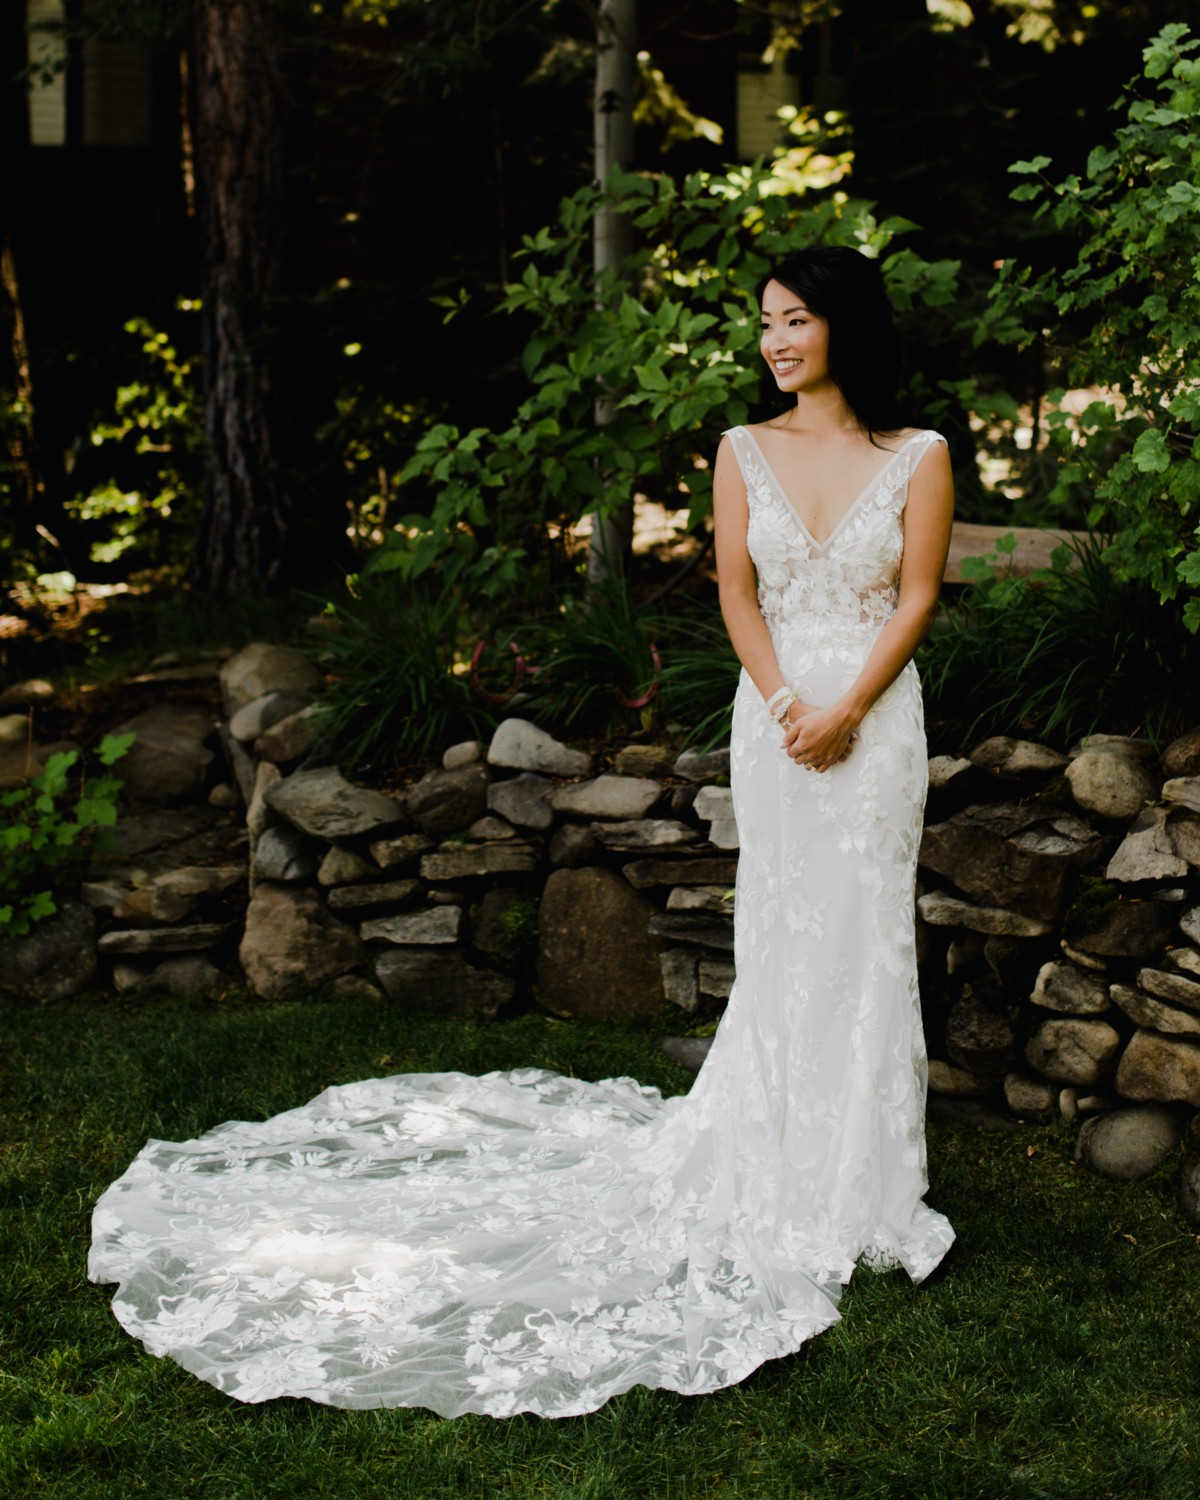 Bride posing for photos after hair and makeup by Love Is In The Hair Lake Tahoe wedding